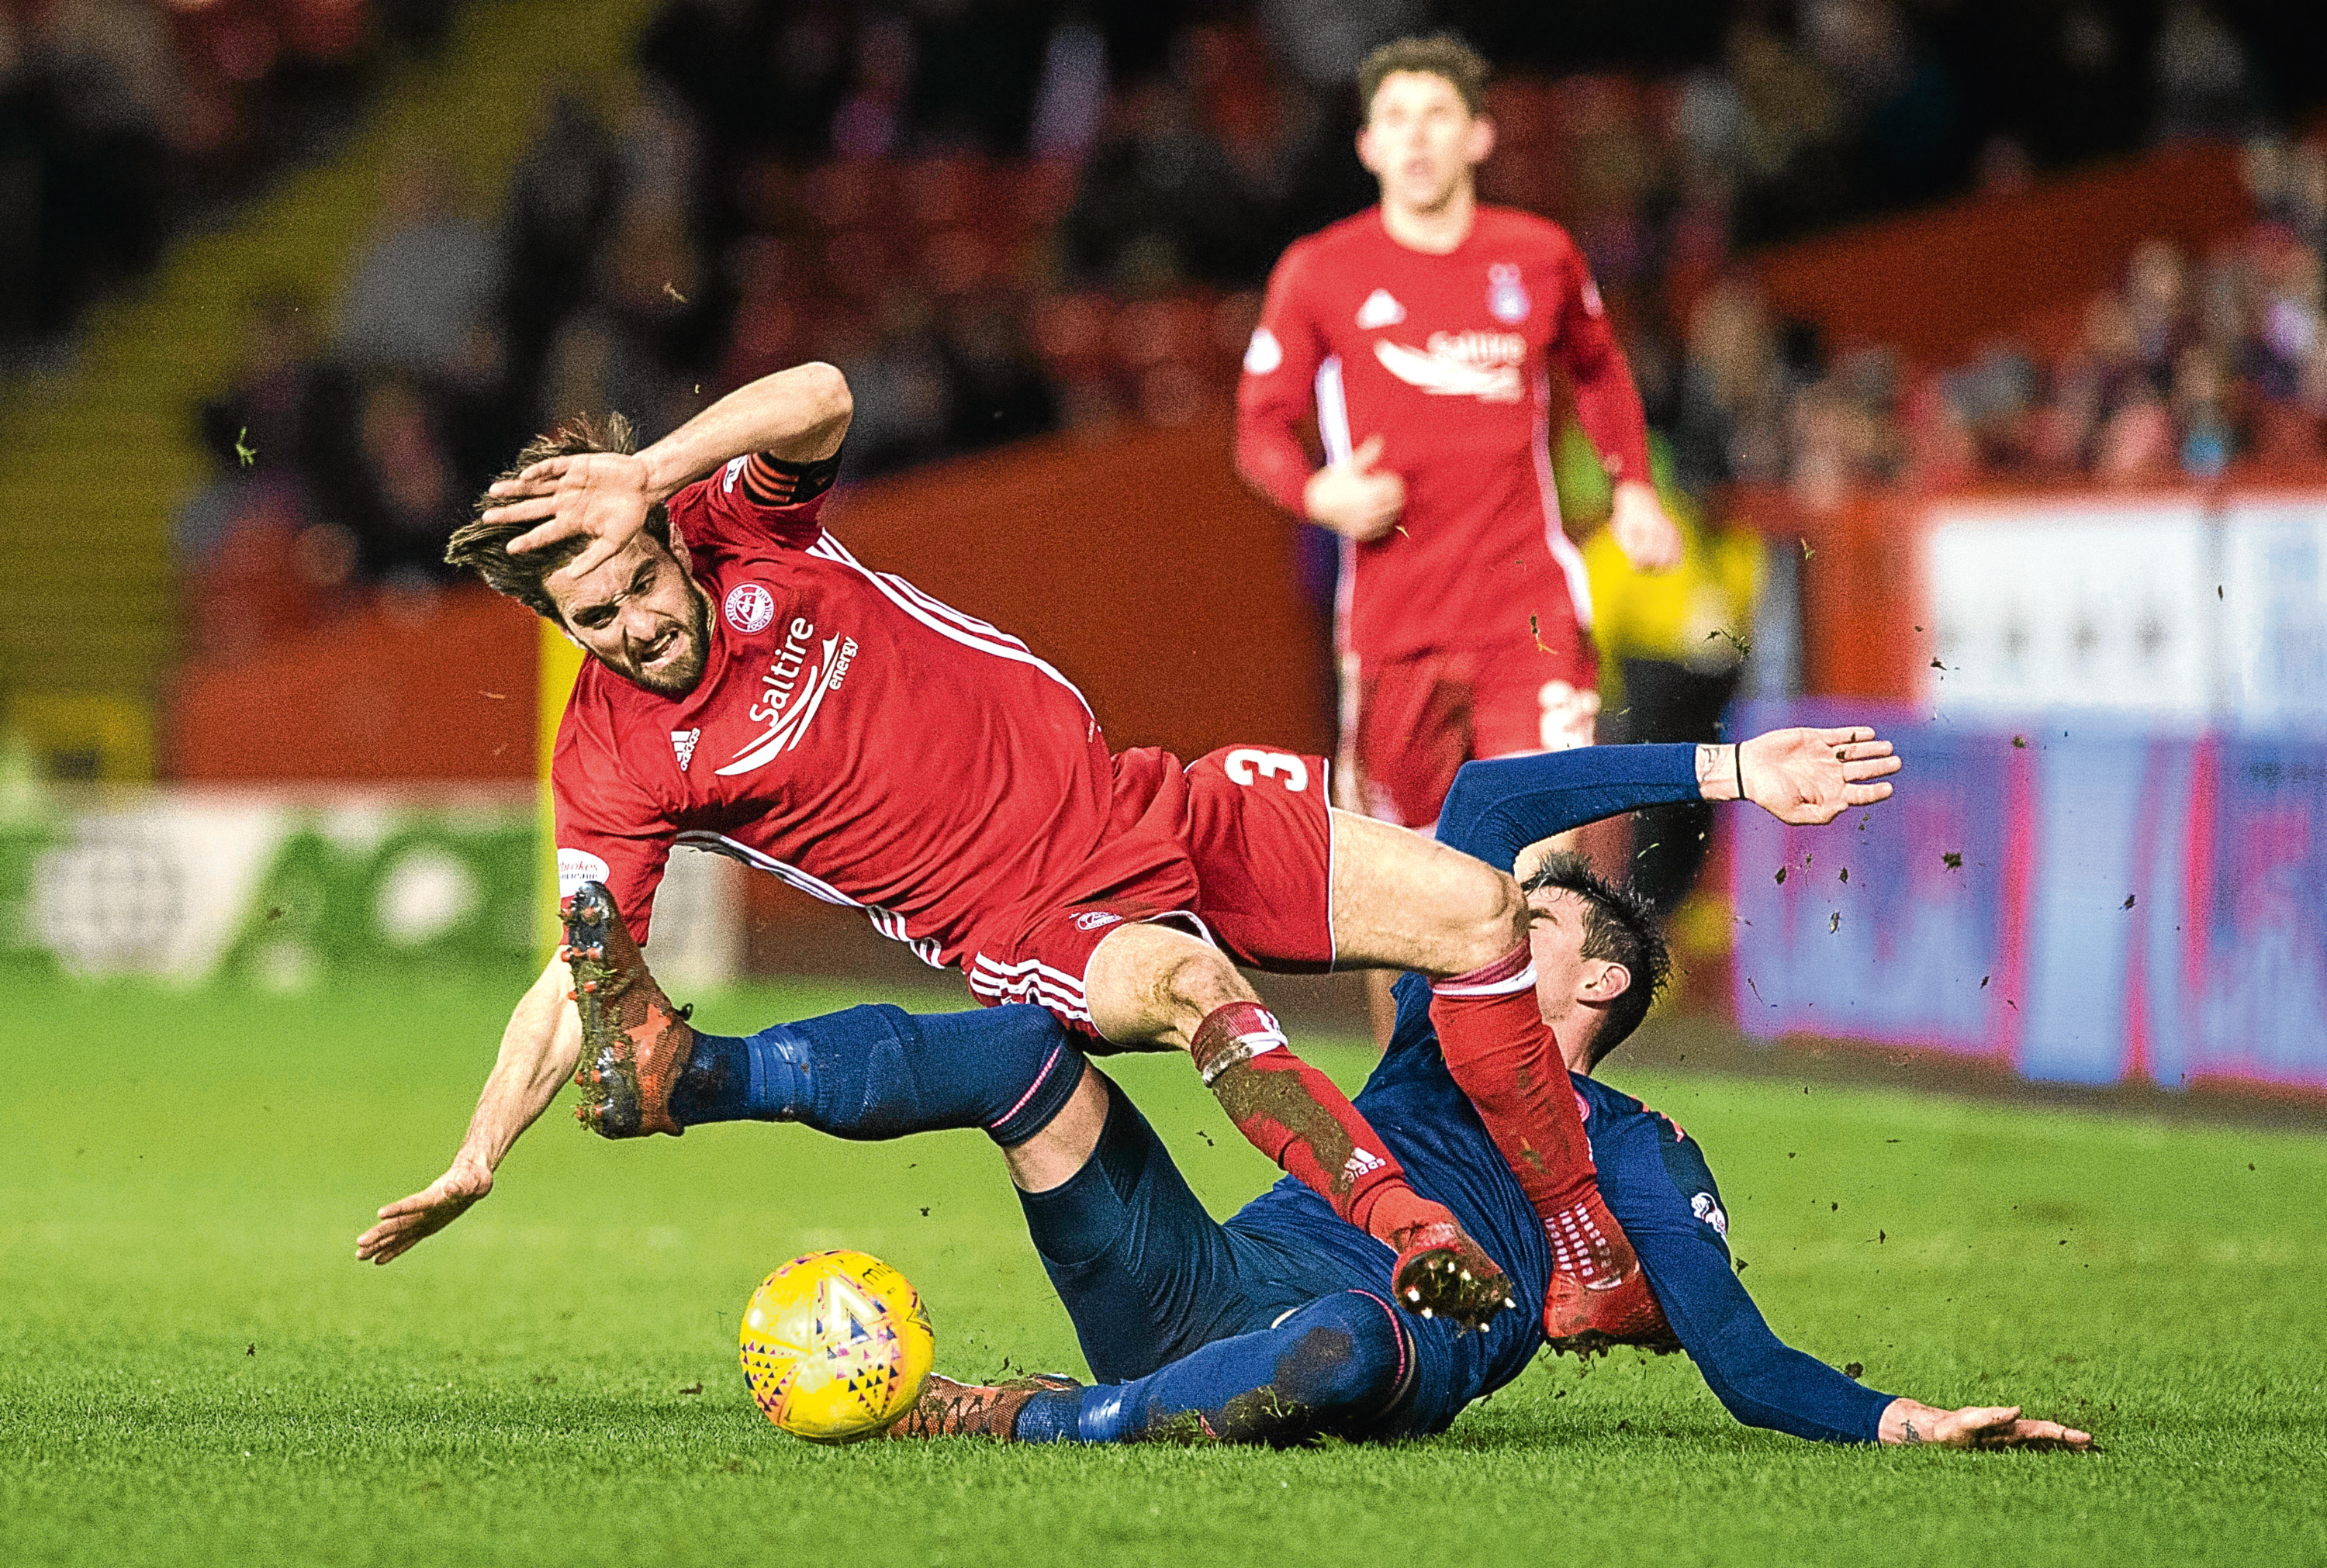 Aberdeen's Graeme Shinnie  is fouled by Kyle Lafferty who is sent off